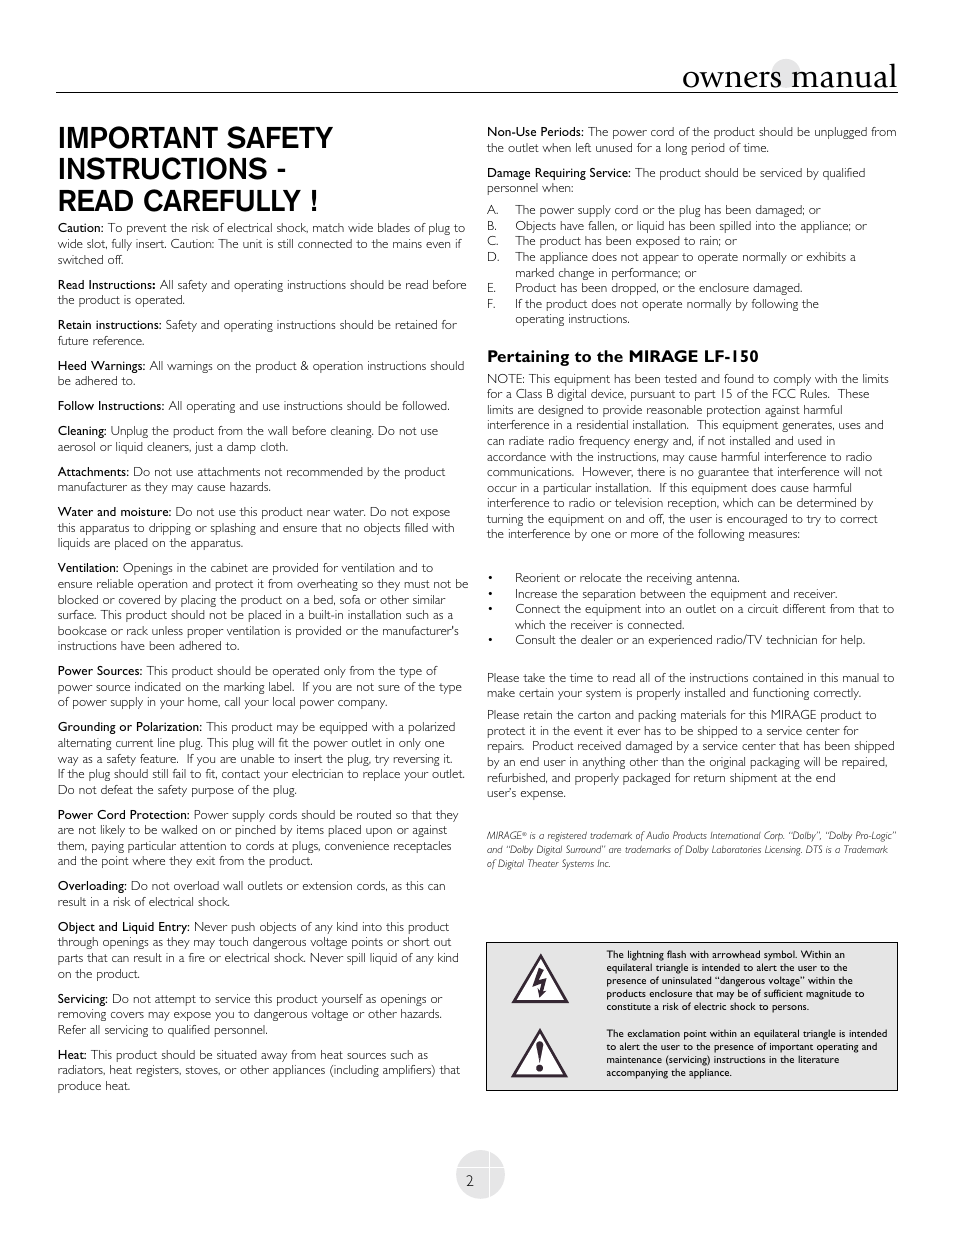 owners manual important safety instructions read carefully rh manualsdir com